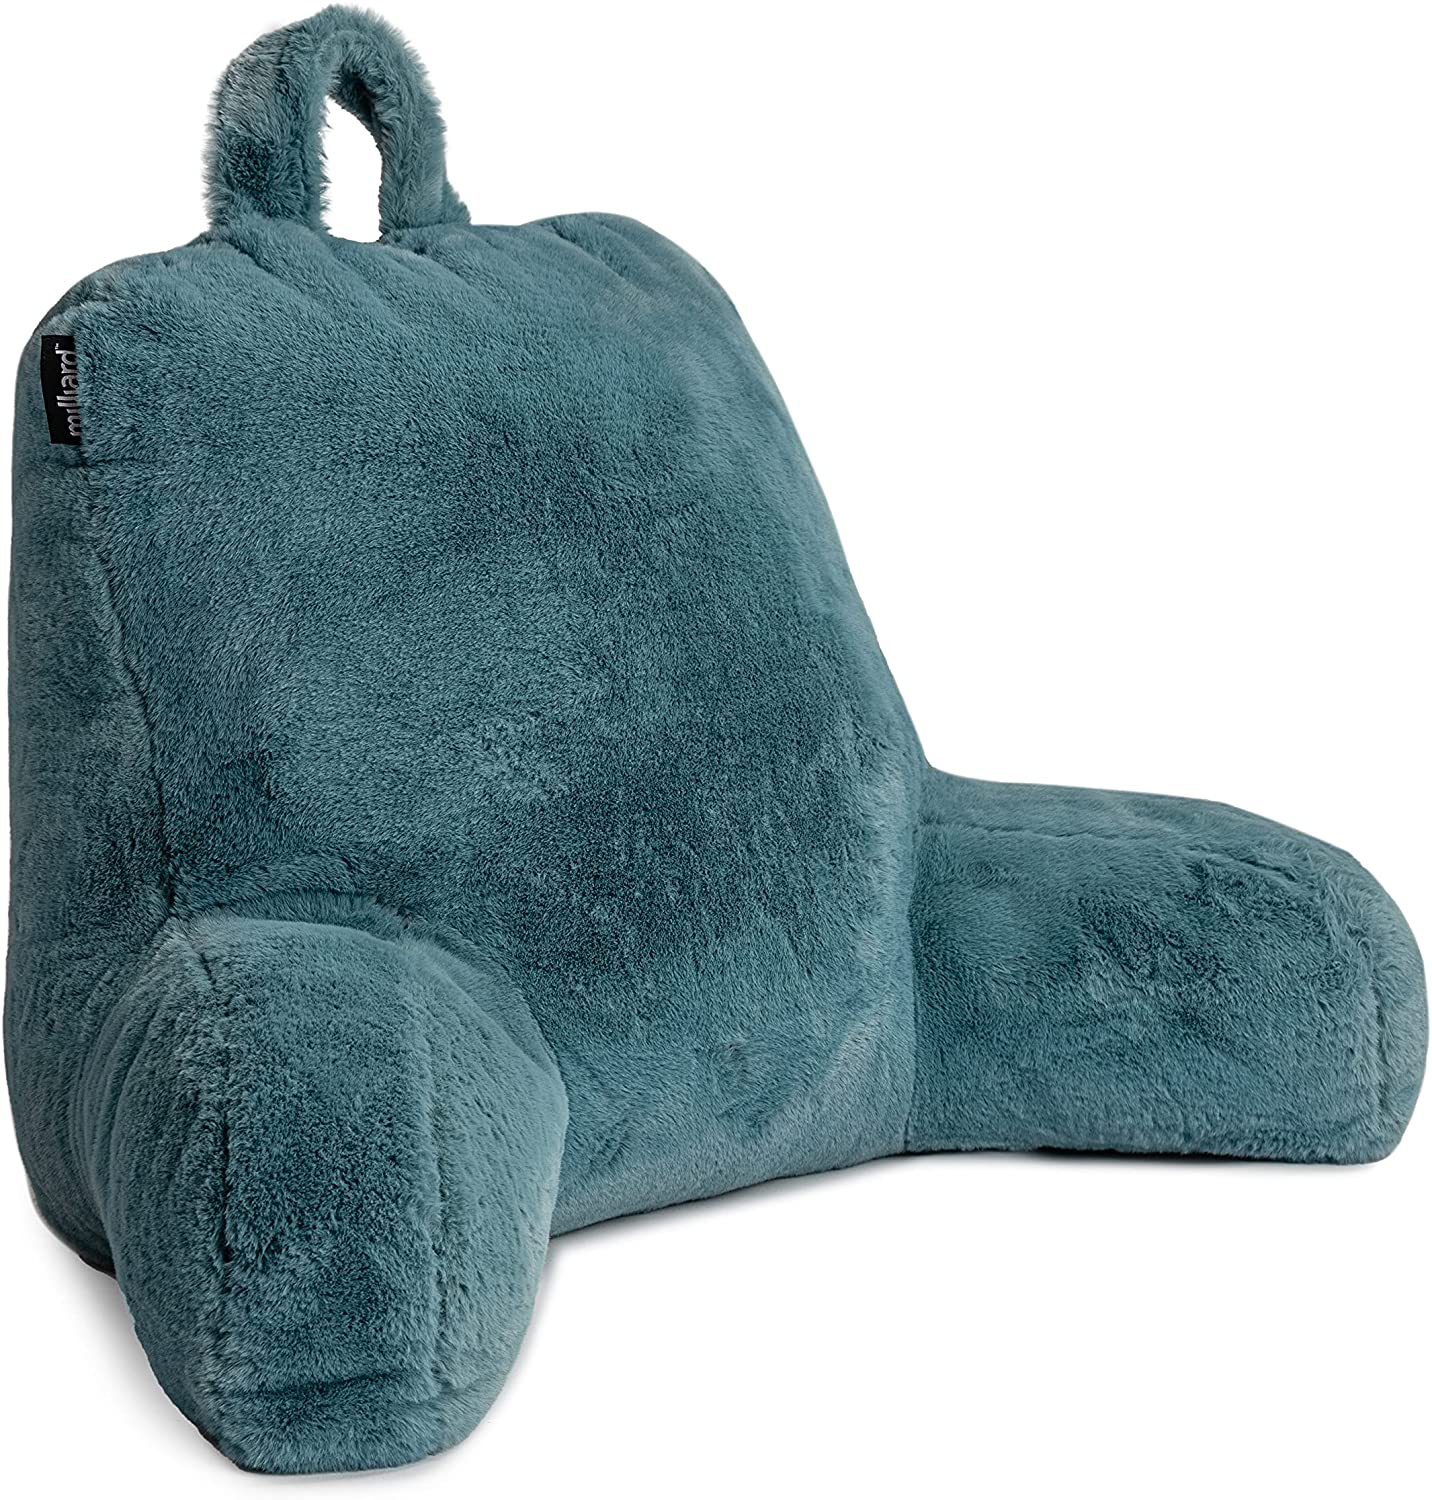 Milliard Reading Pillow with Shredded Memory Back Rest Some reservation Foam Pil Today's only